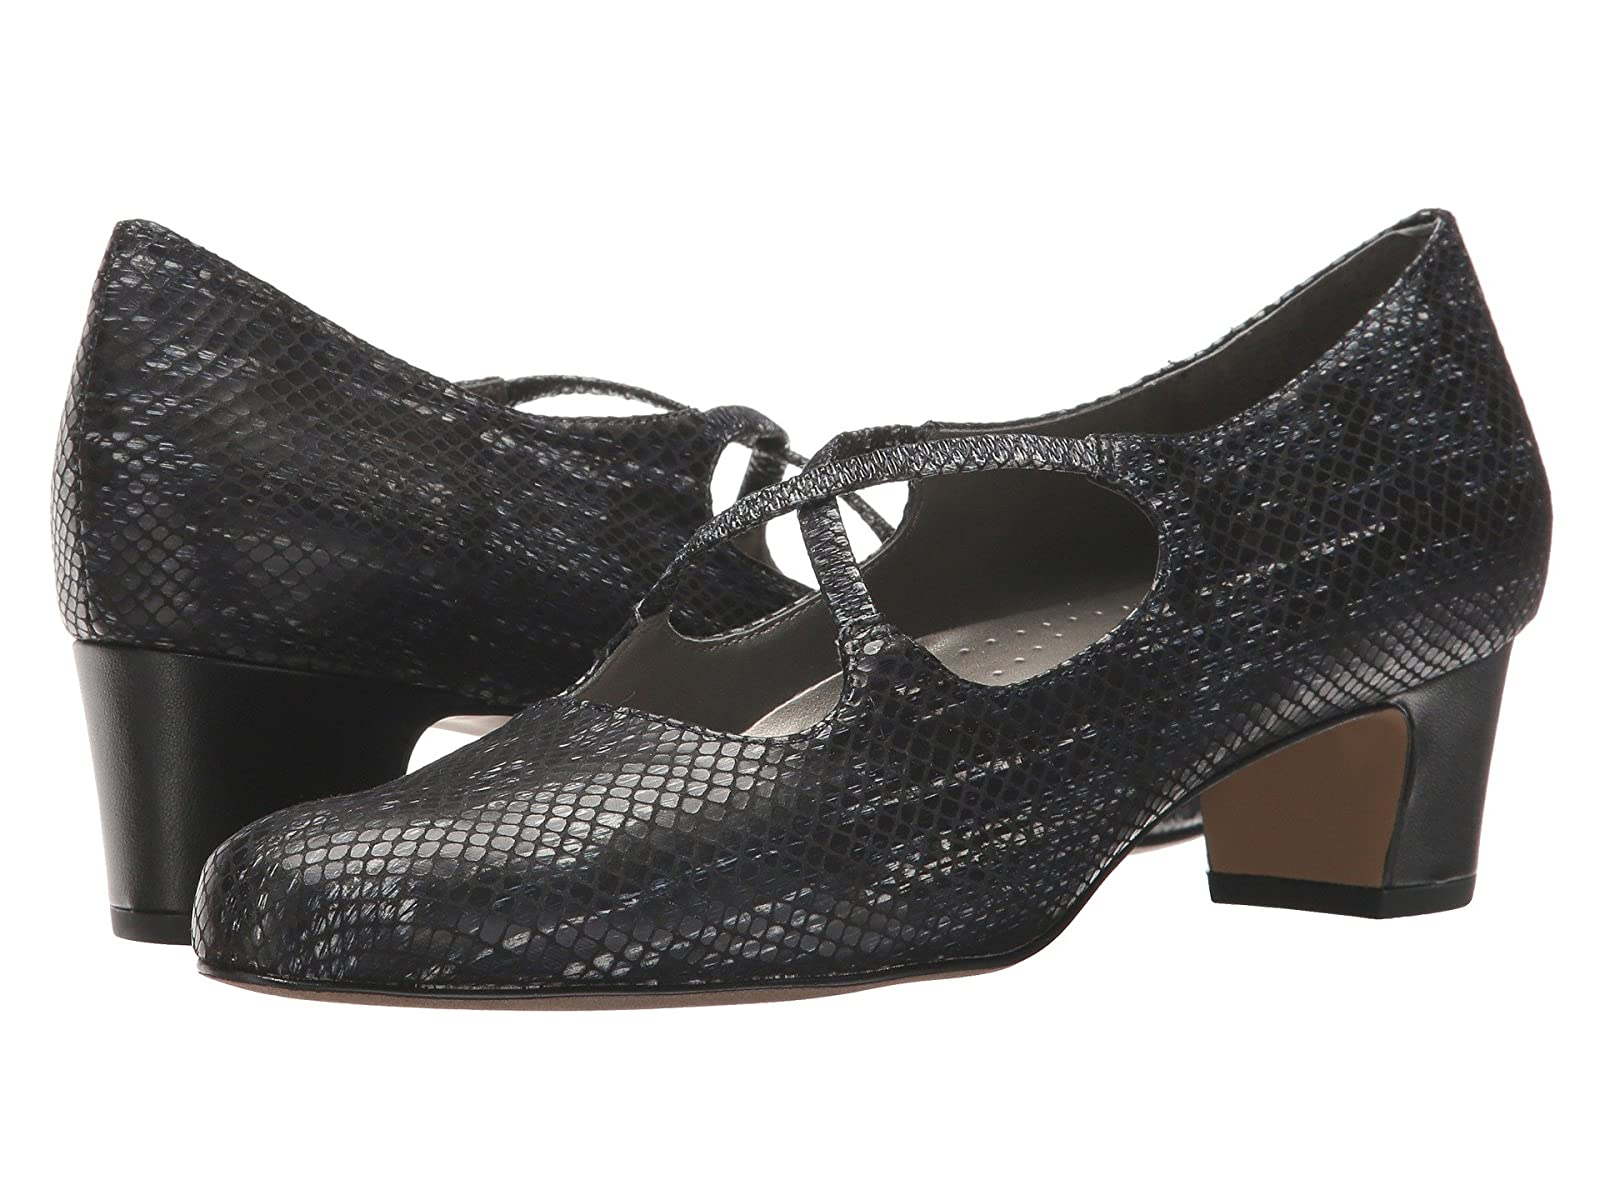 Trotters JamieCheap and distinctive eye-catching shoes